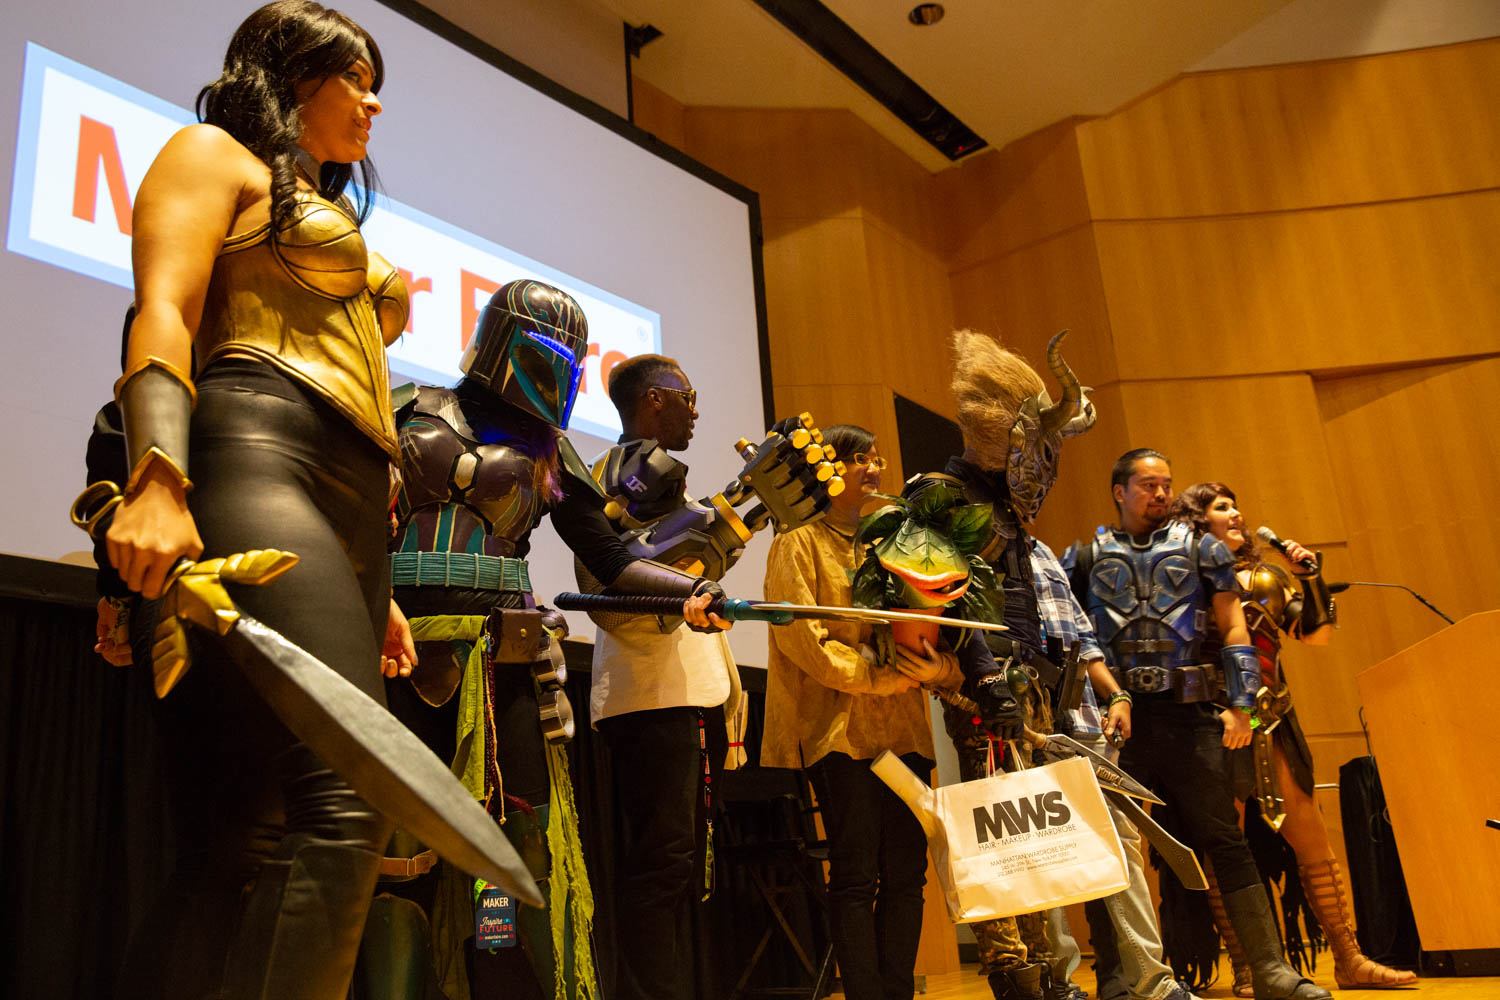 Announcing Our World Maker Faire Cosplay Contest Winners